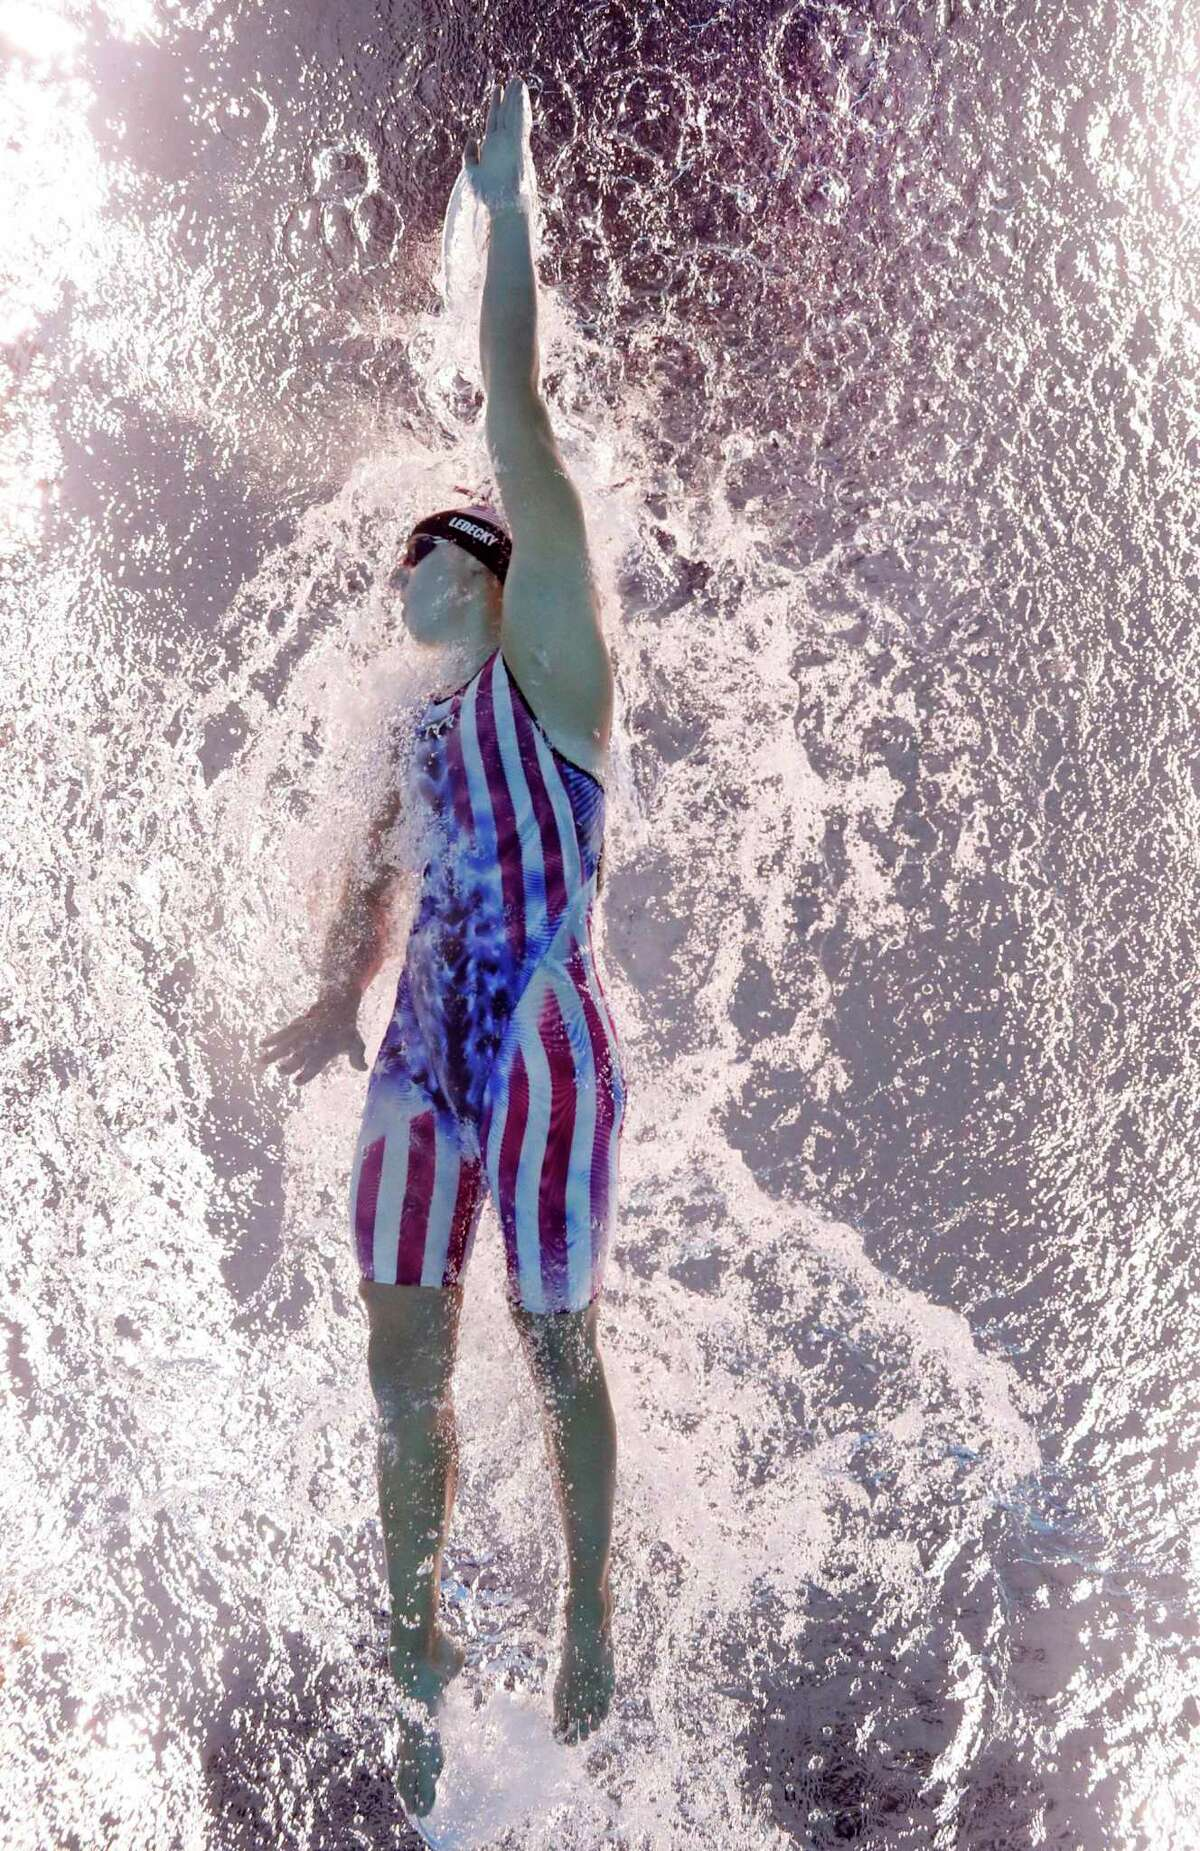 TOKYO, JAPAN - JULY 31: Katie Ledecky of Team United States competes in the Women's 800m Freestyle Final at Tokyo Aquatics Centre on July 31, 2021 in Tokyo, Japan. (Photo by Tom Pennington/Getty Images)